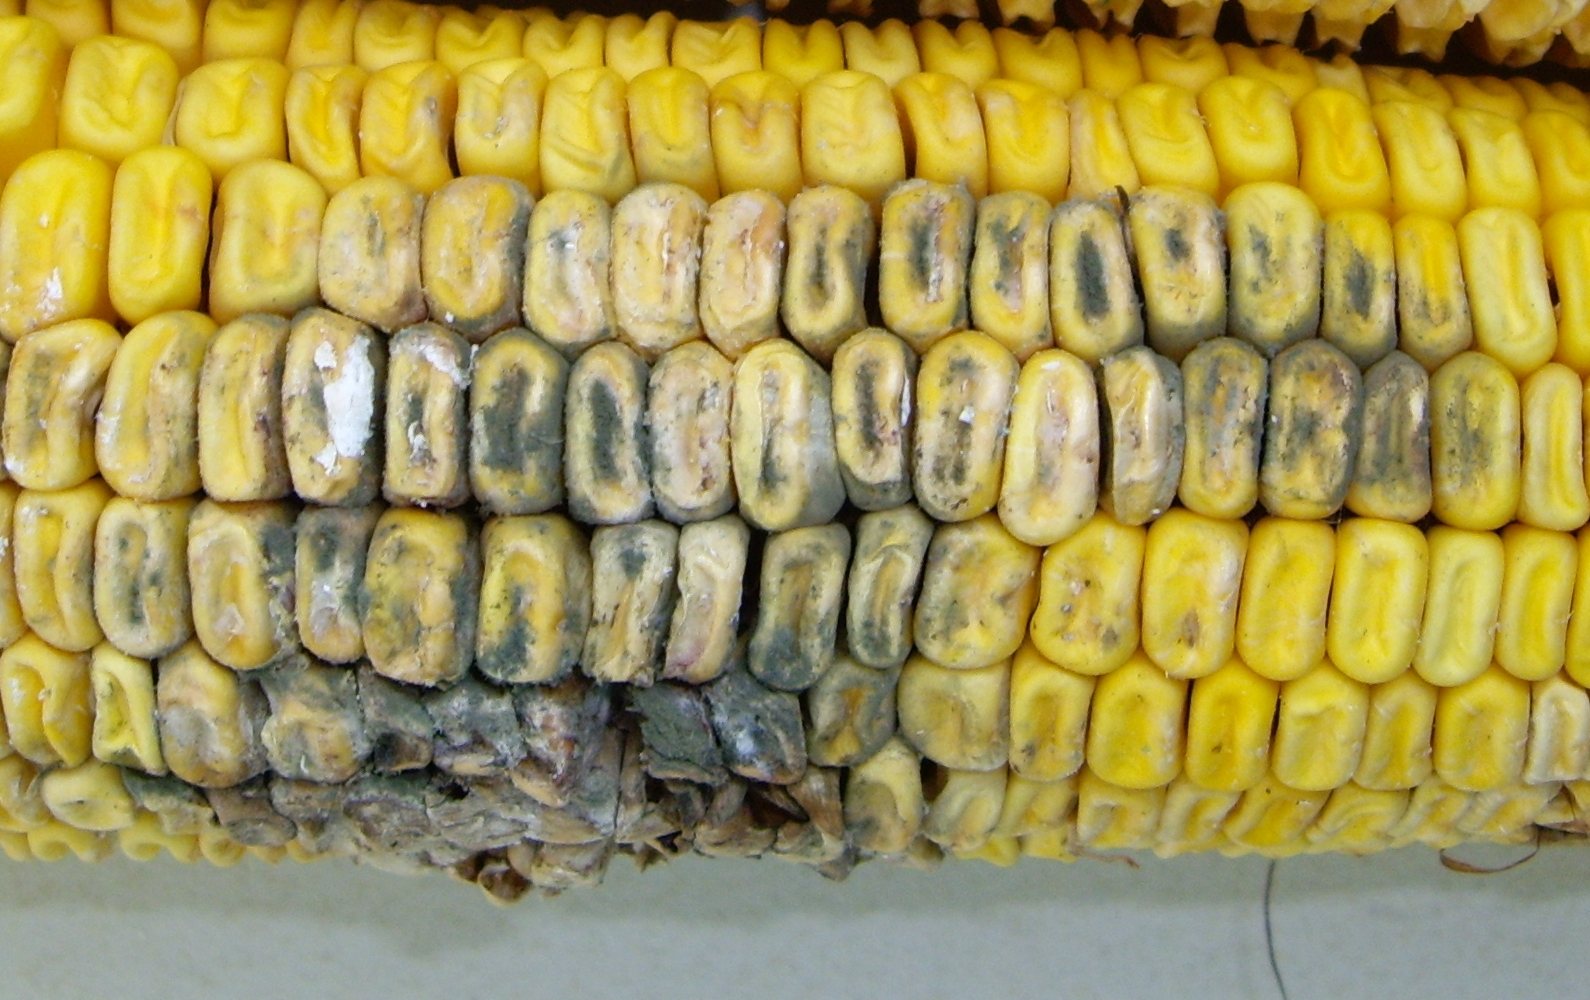 Penicillium ear rot associated with hail injury to the ear.